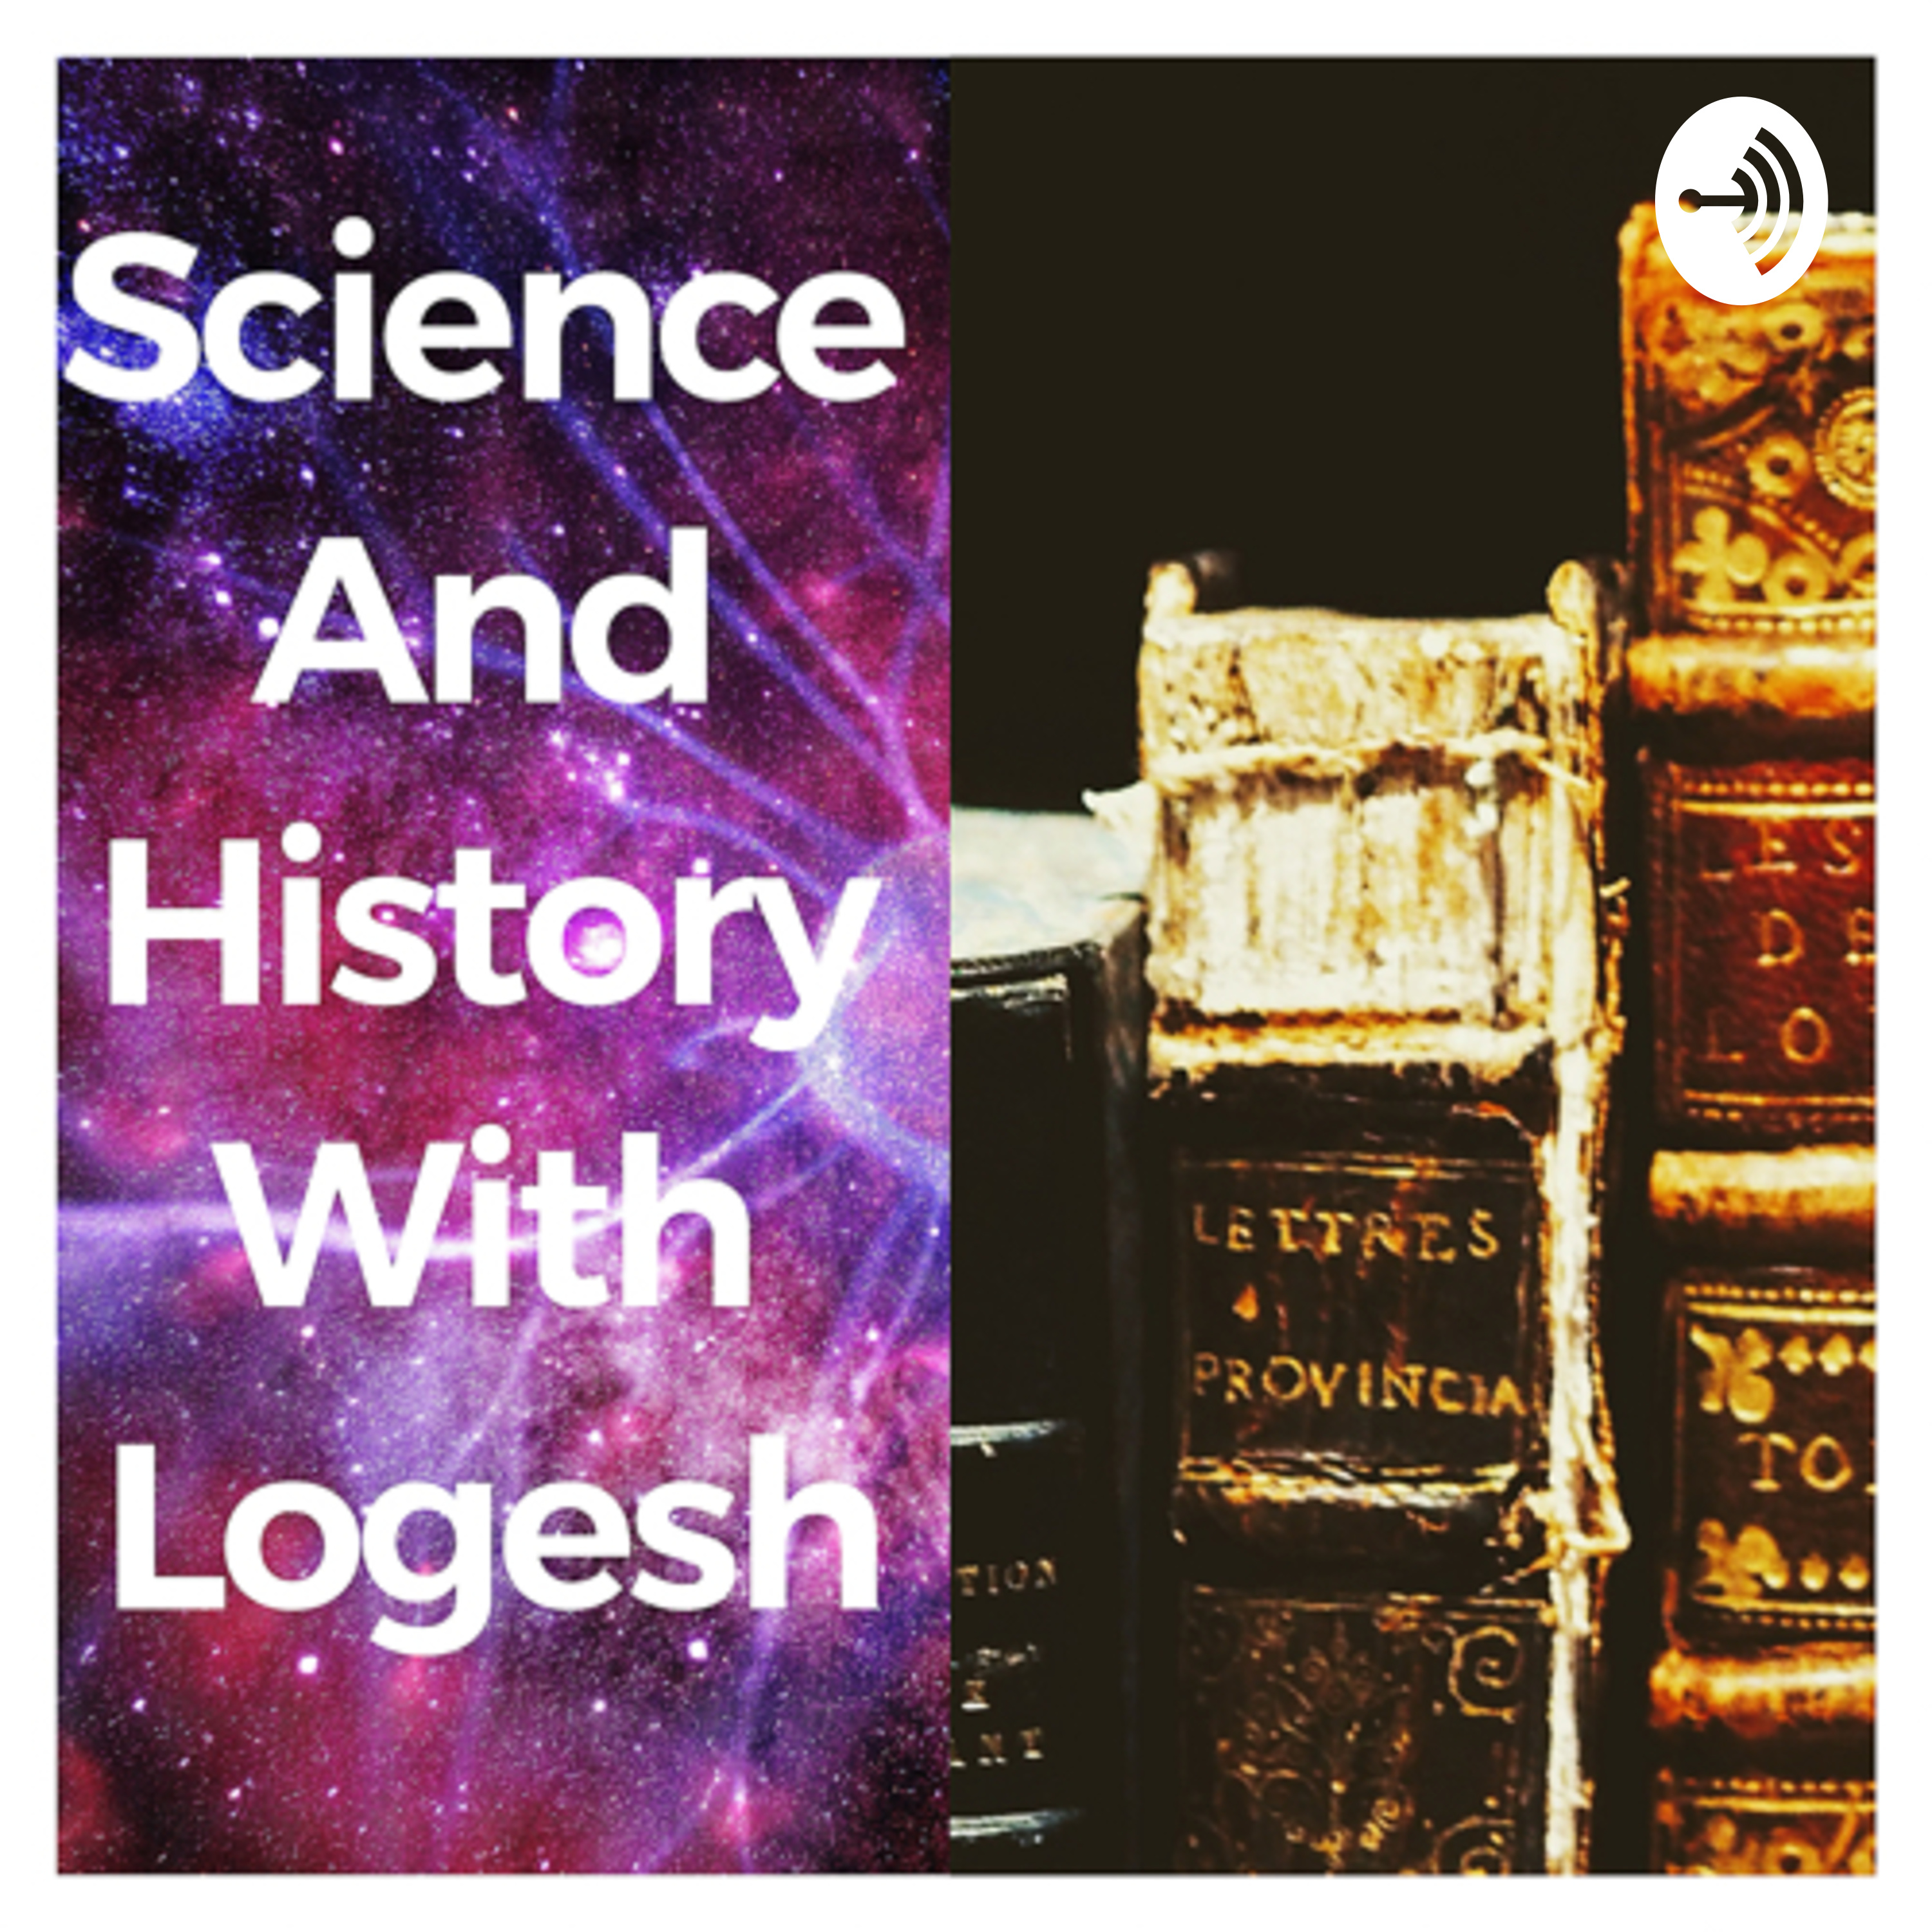 Science and History with Logesh